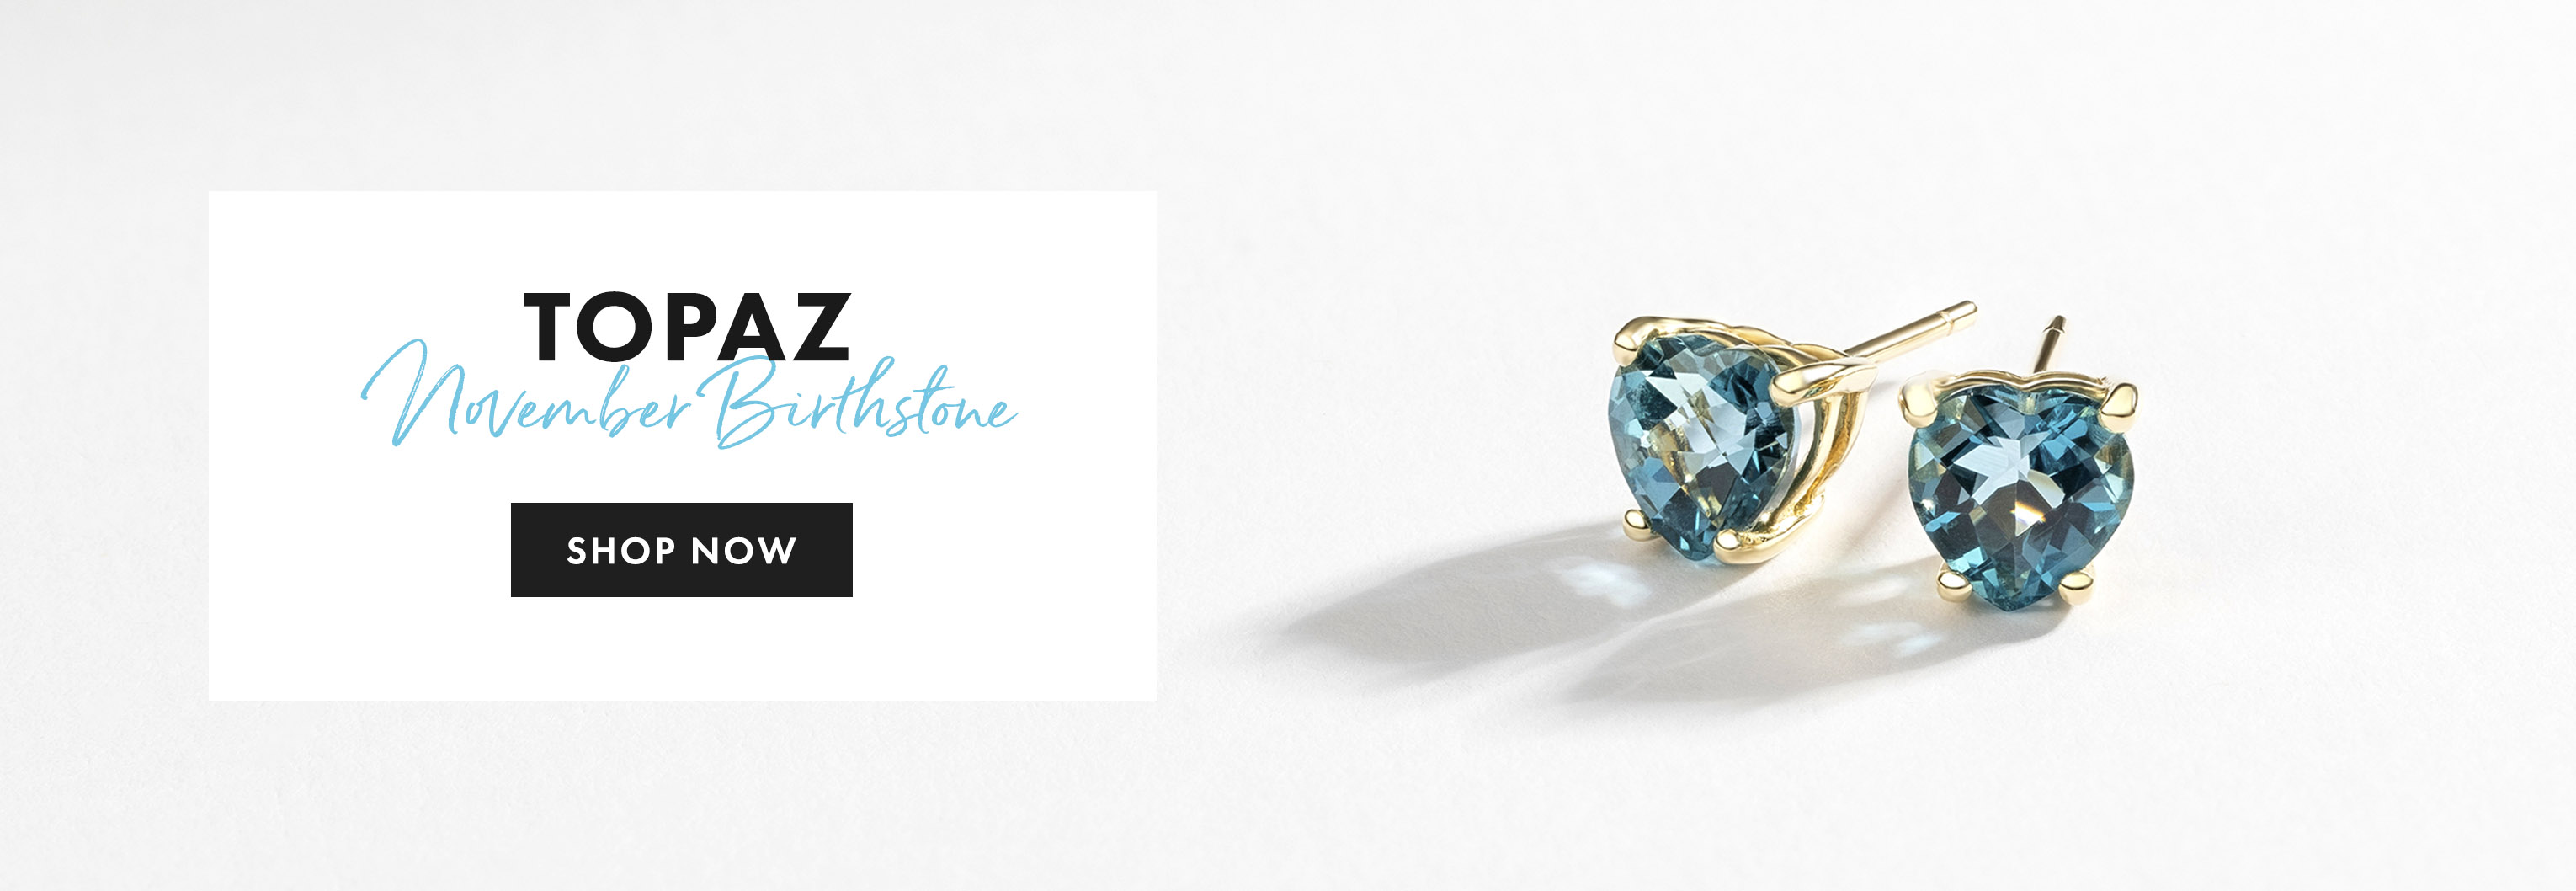 Topaz November Birthstone Jewellery